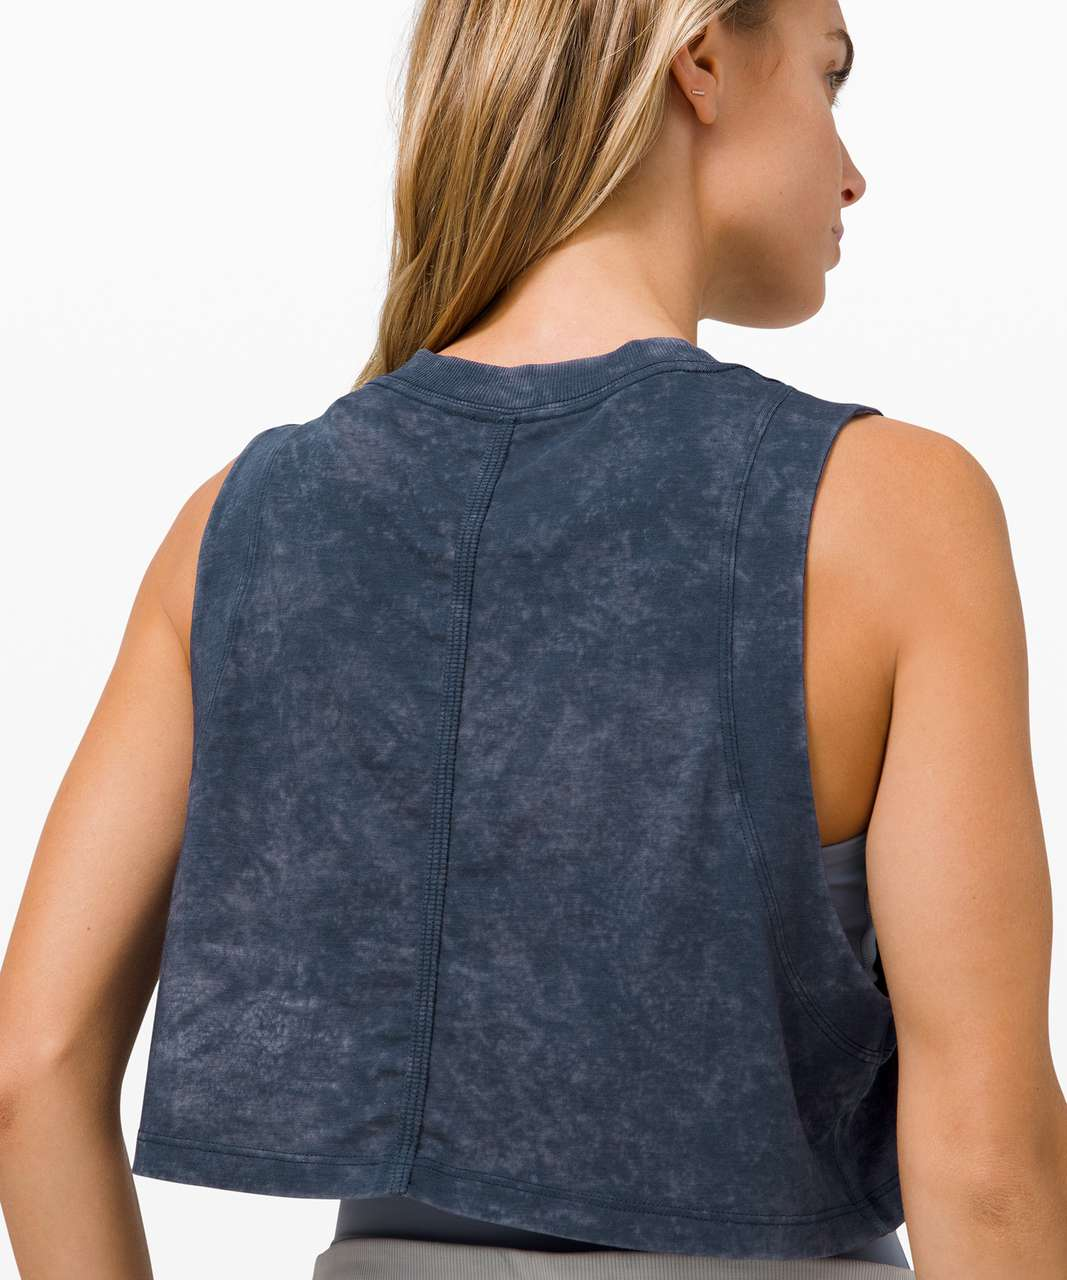 Lululemon All Yours Crop Tank *Wash - Cloudy Wash True Navy